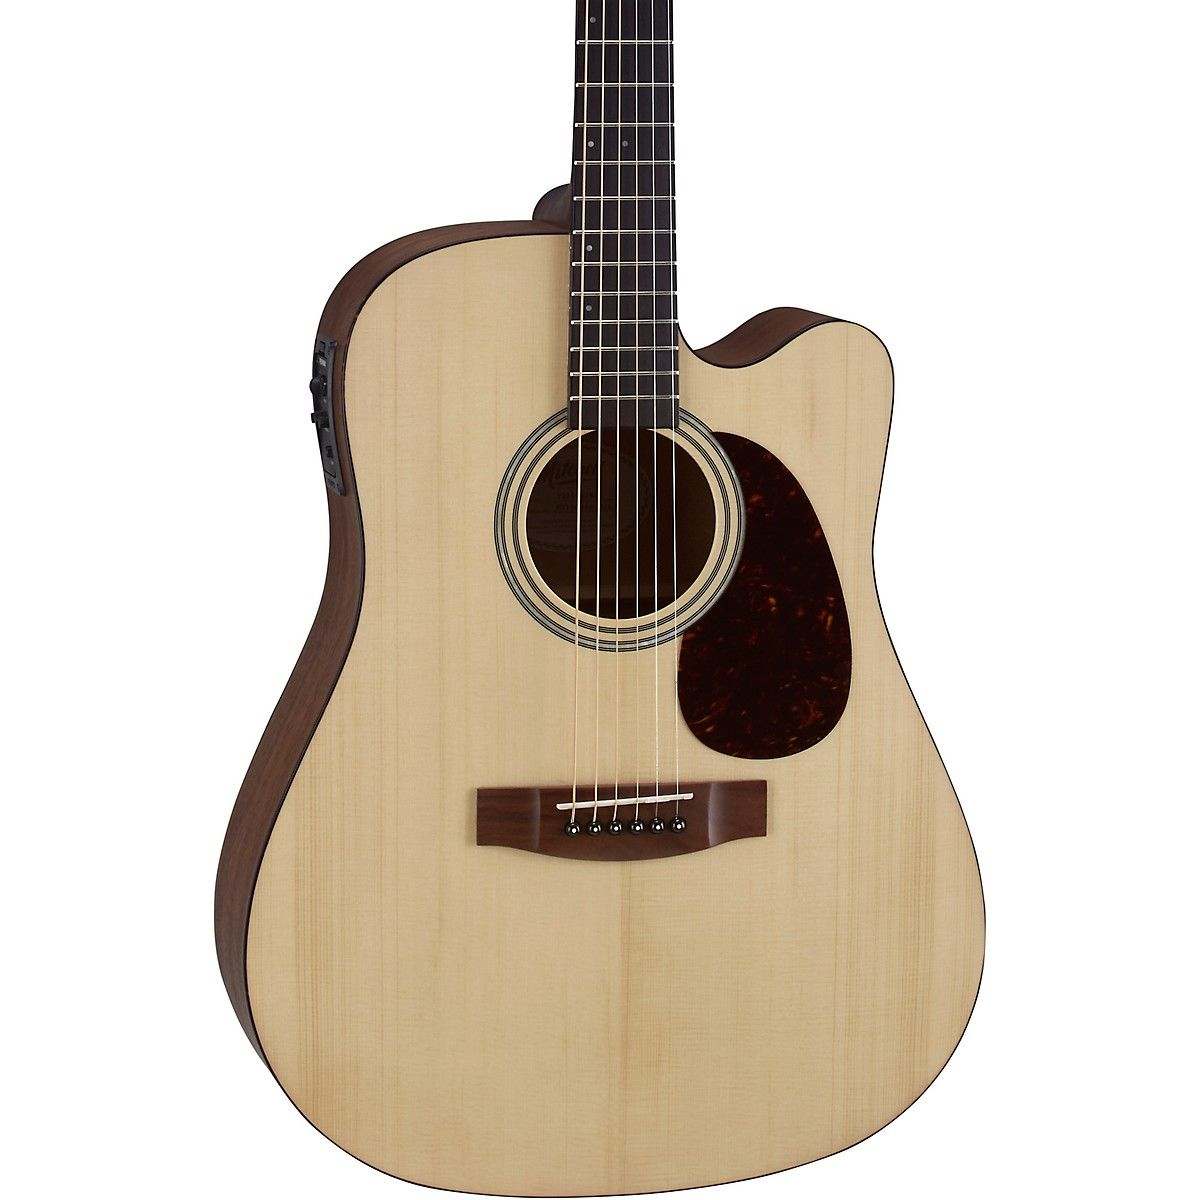 Mitchell T311ce Dreadnought Acoustic Electric Guitar Acoustic Electric Guitar Guitar Acoustic Electric